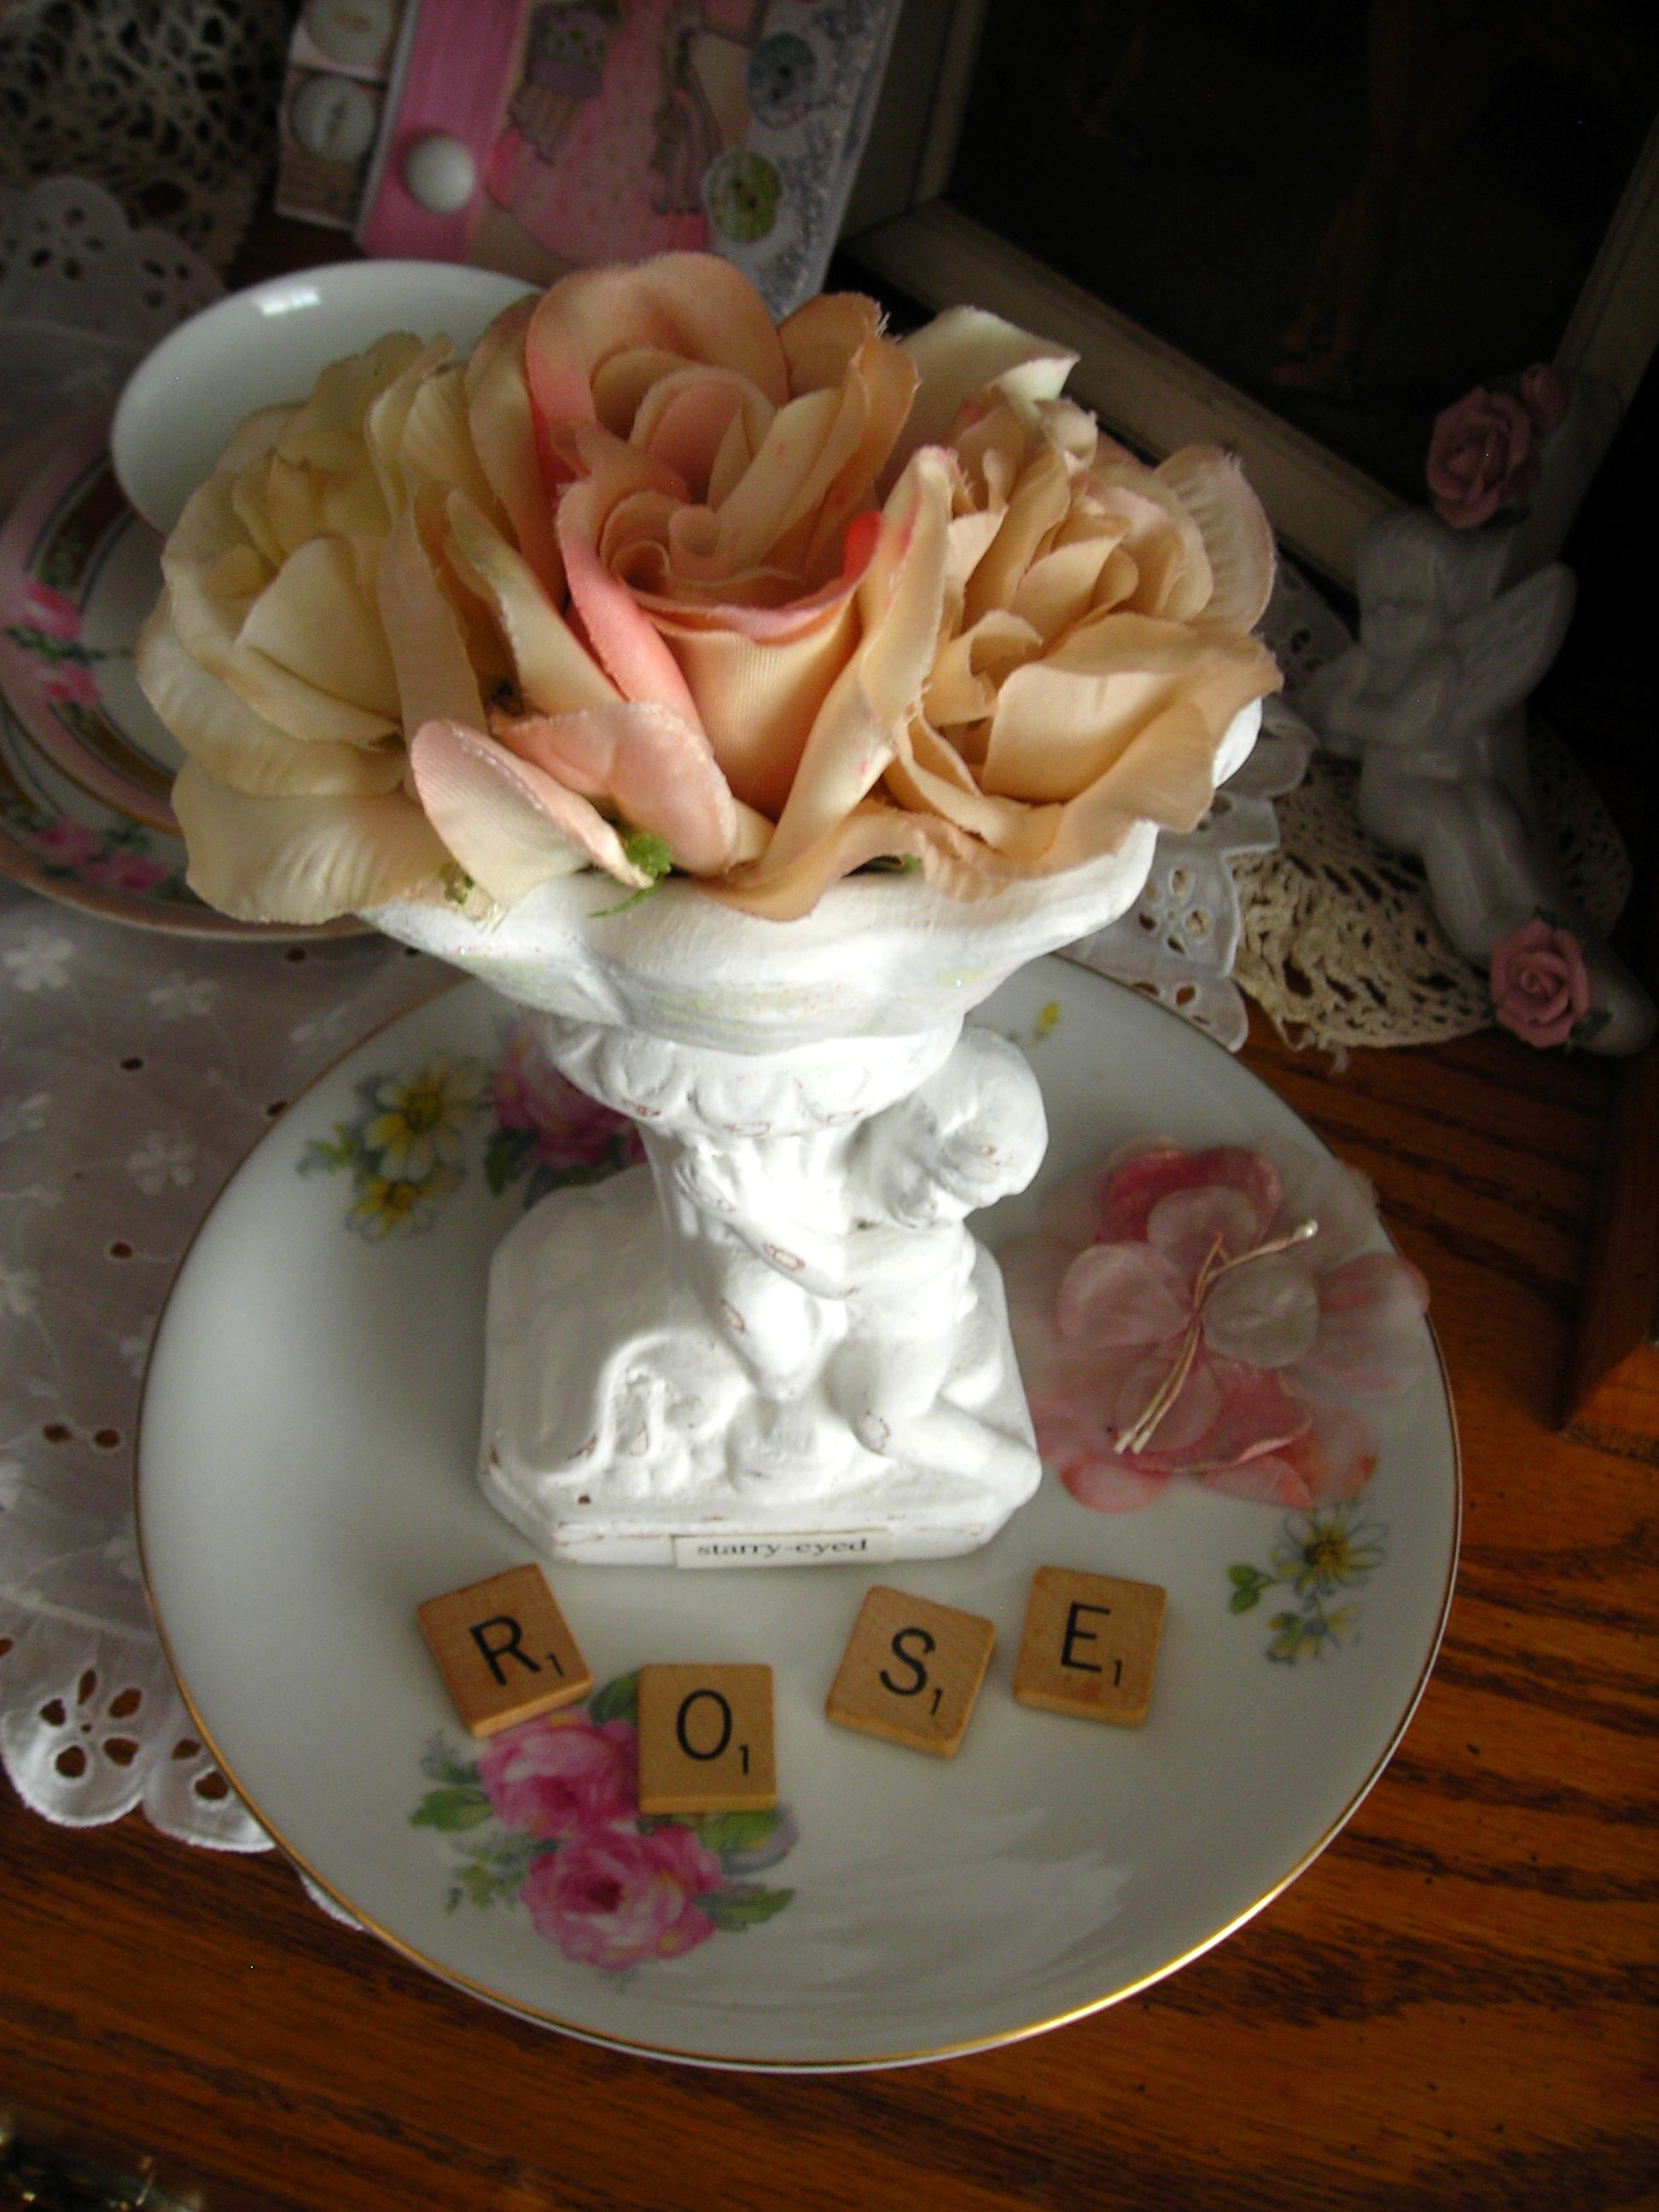 i'm a sucker for 'rose' anything! my mom's middle name was rose. here's a precious treasure collection from sue